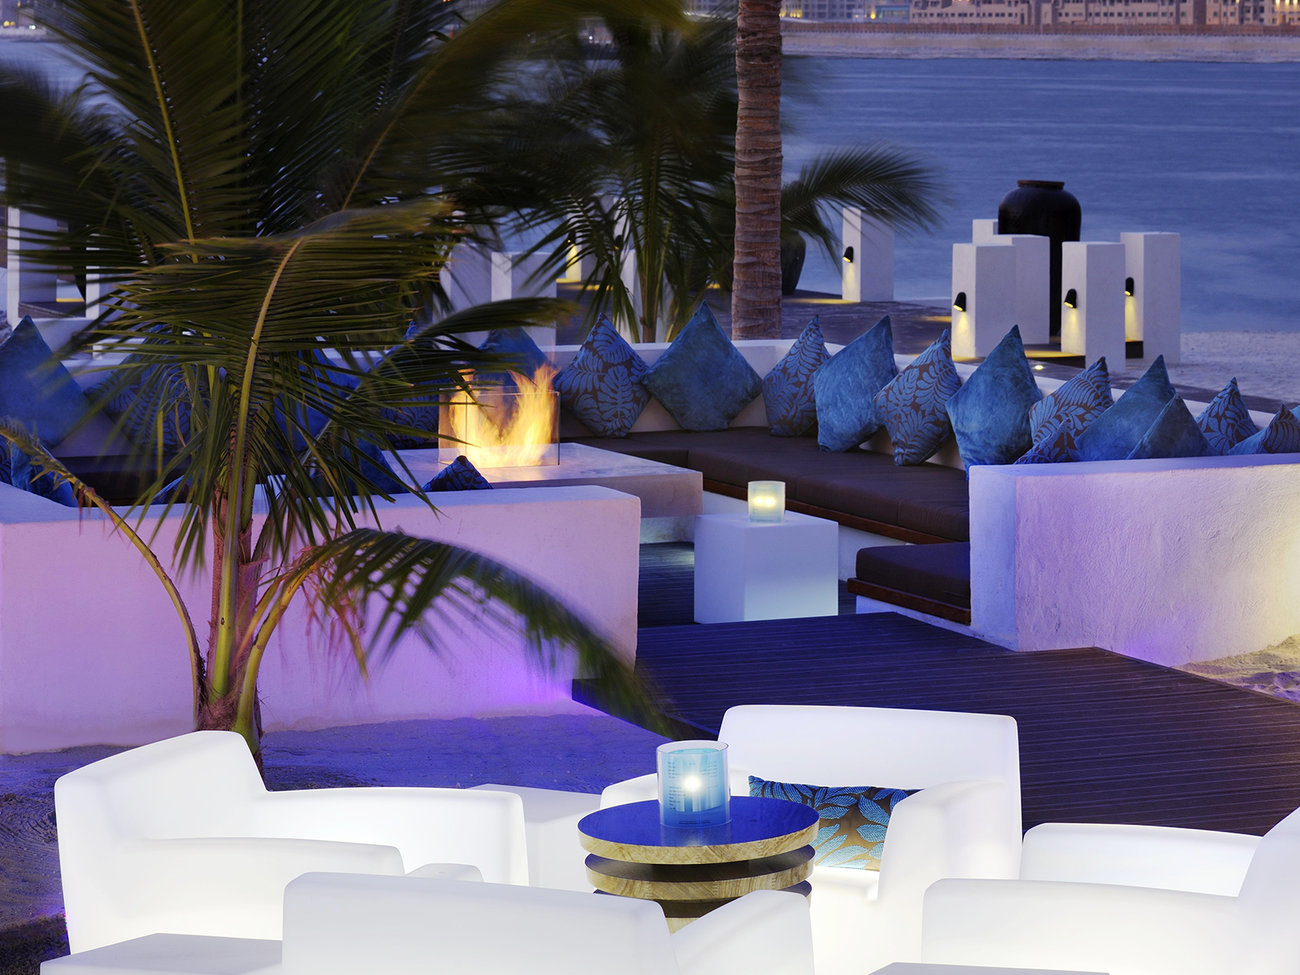 The Jetty Lounge Bar in Dubai